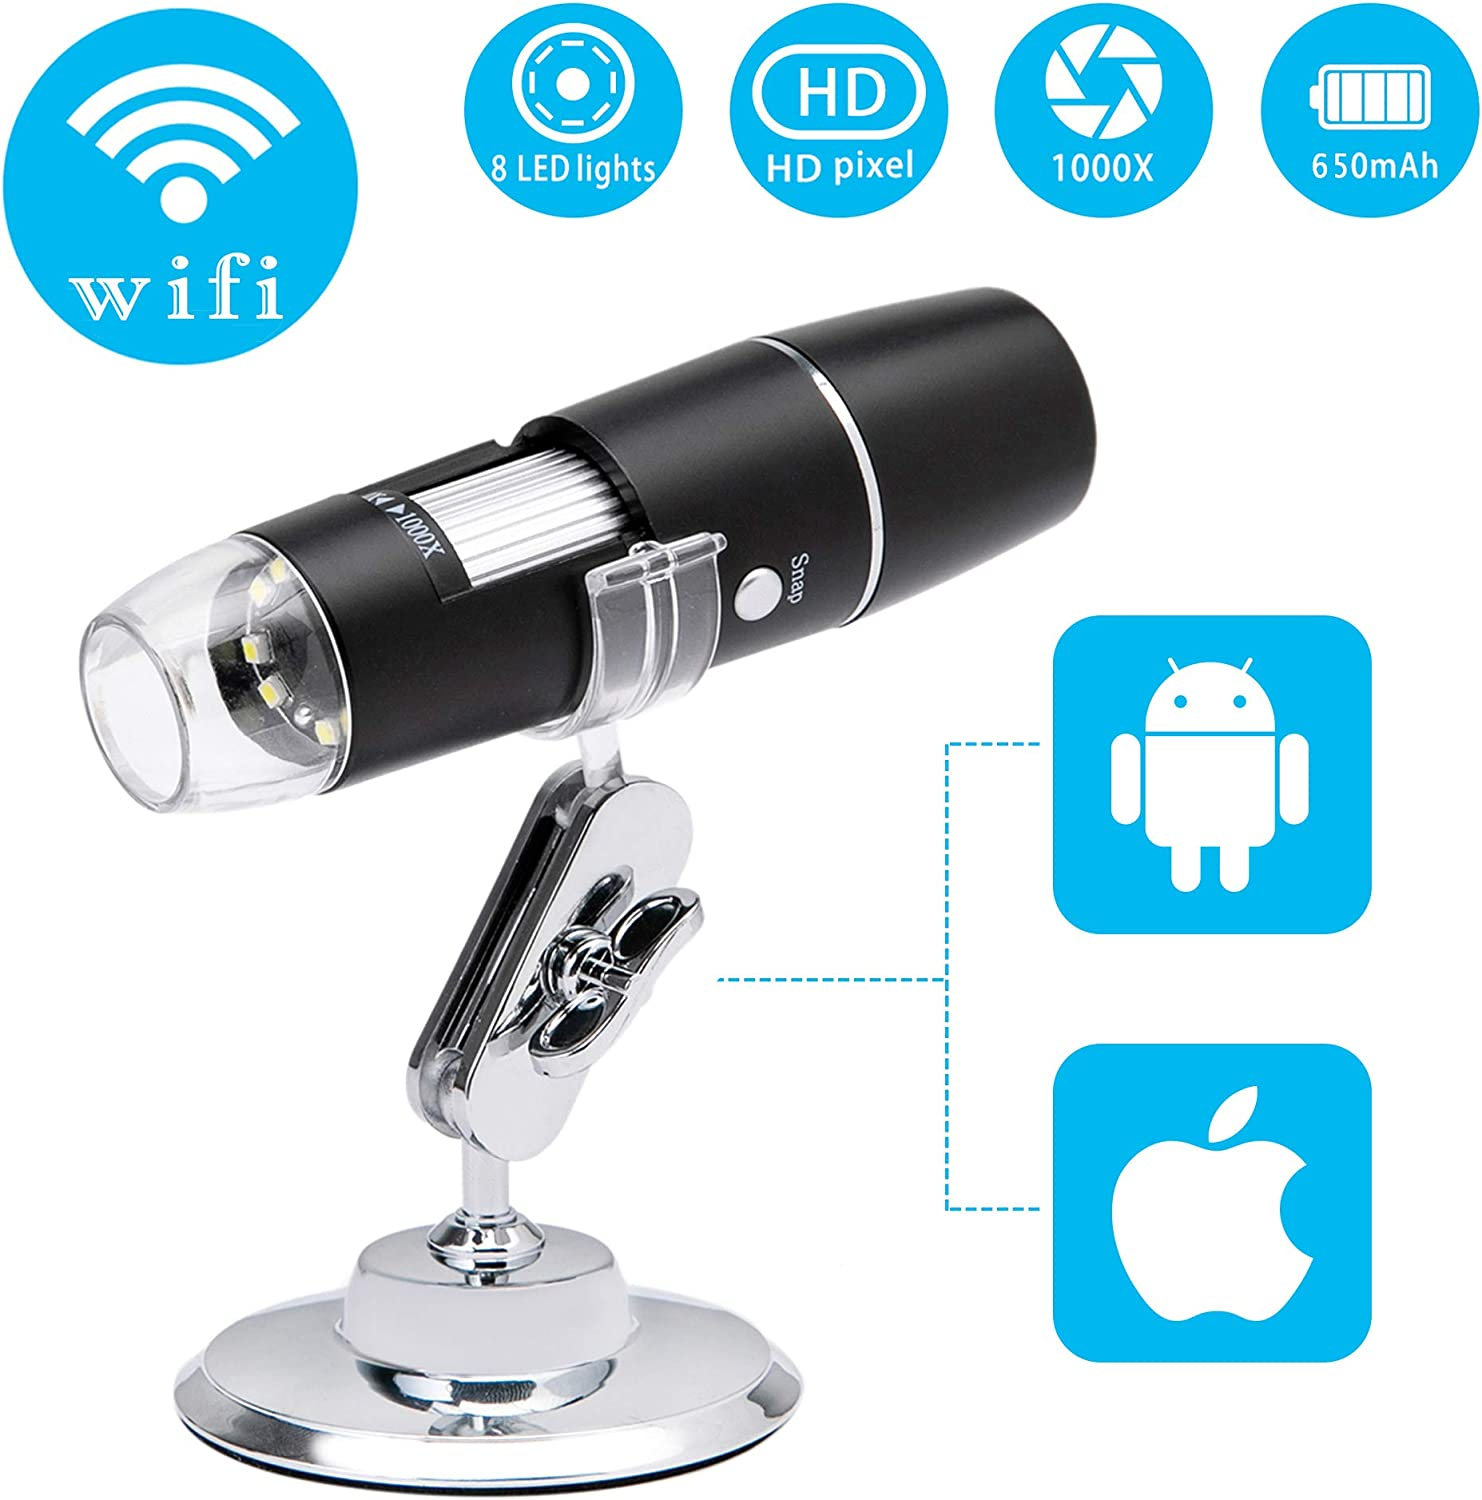 Beslands WiFi Digital Microscope Wireless 50X to 1000X Zoom Magnification Mini Handheld Endoscope Inspection HD Camera 8 LED Light, Compatible with iPhone iPad Android Smartphone Mac Windows